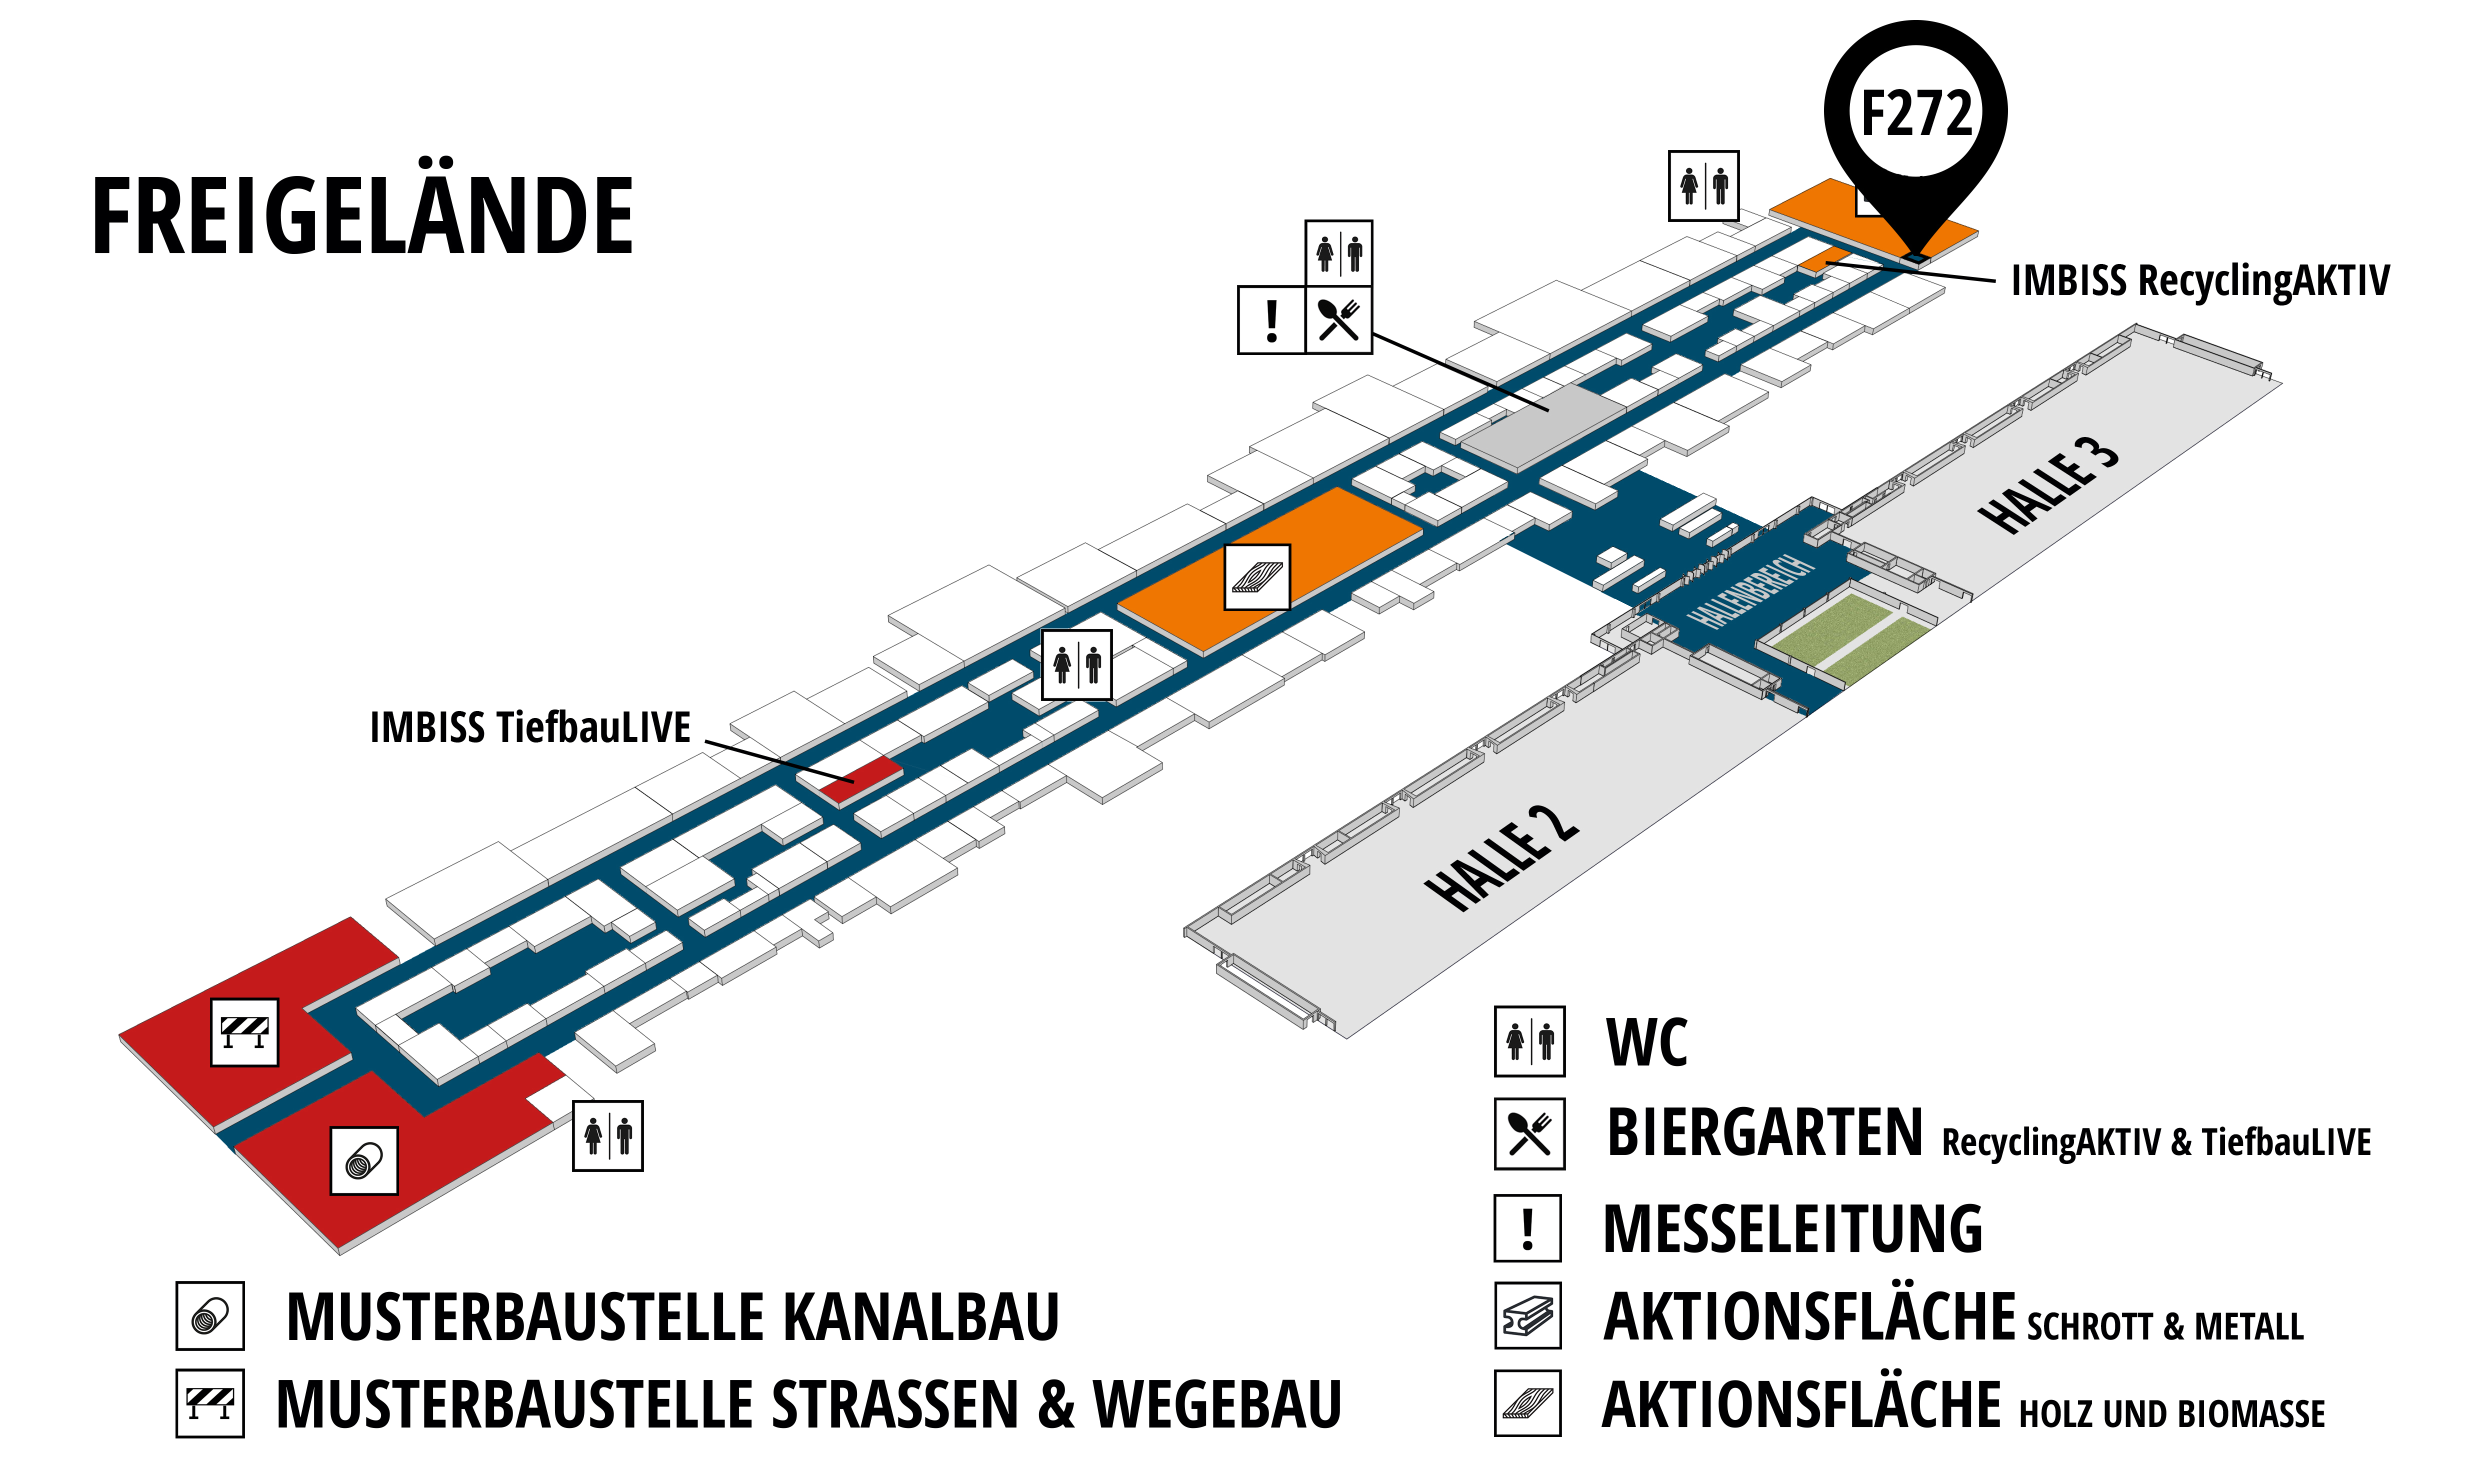 RecyclingAKTIV & TiefbauLIVE 2019. The Demonstration Trade Fairs ||Demonstration trade fair for waste removal and recycling. Demonstration trade fair for road construction and civil engineering. hall map (Outdoor area (east)): stand F272